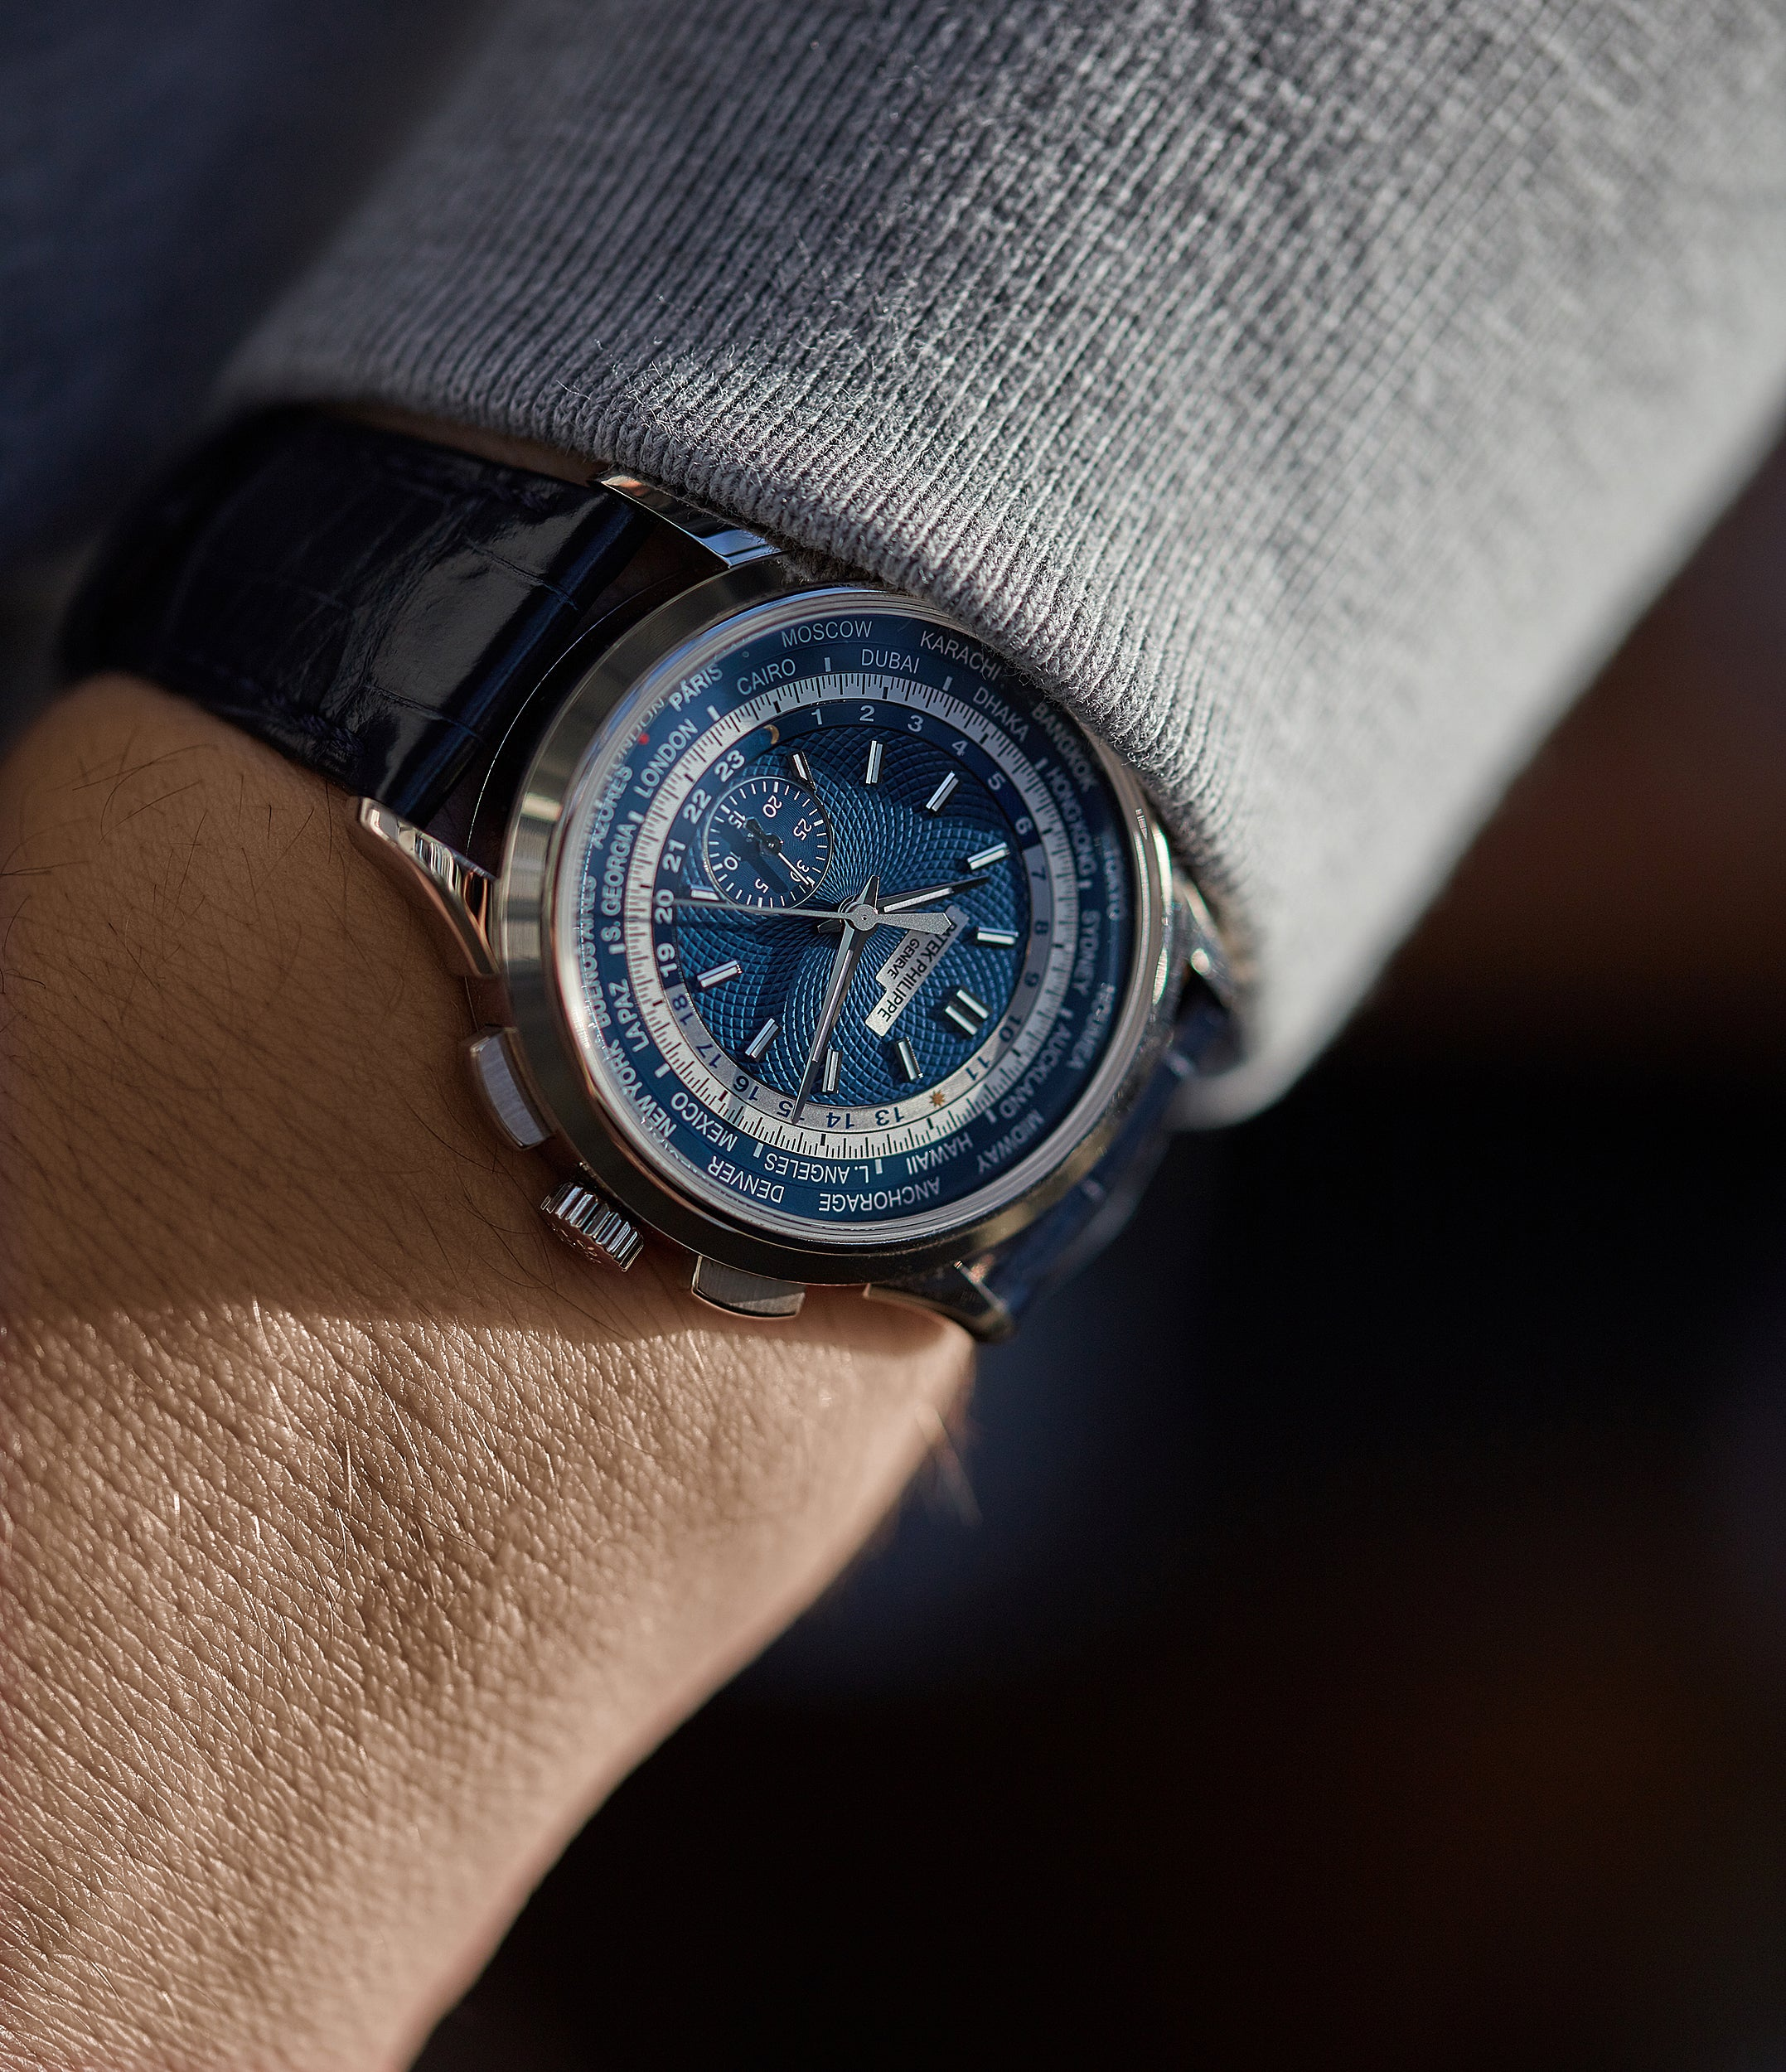 4a22bf1d5e1 on the wrist Patek Philippe Complications World Time Chronograph 5930G-001  white gold watch blue